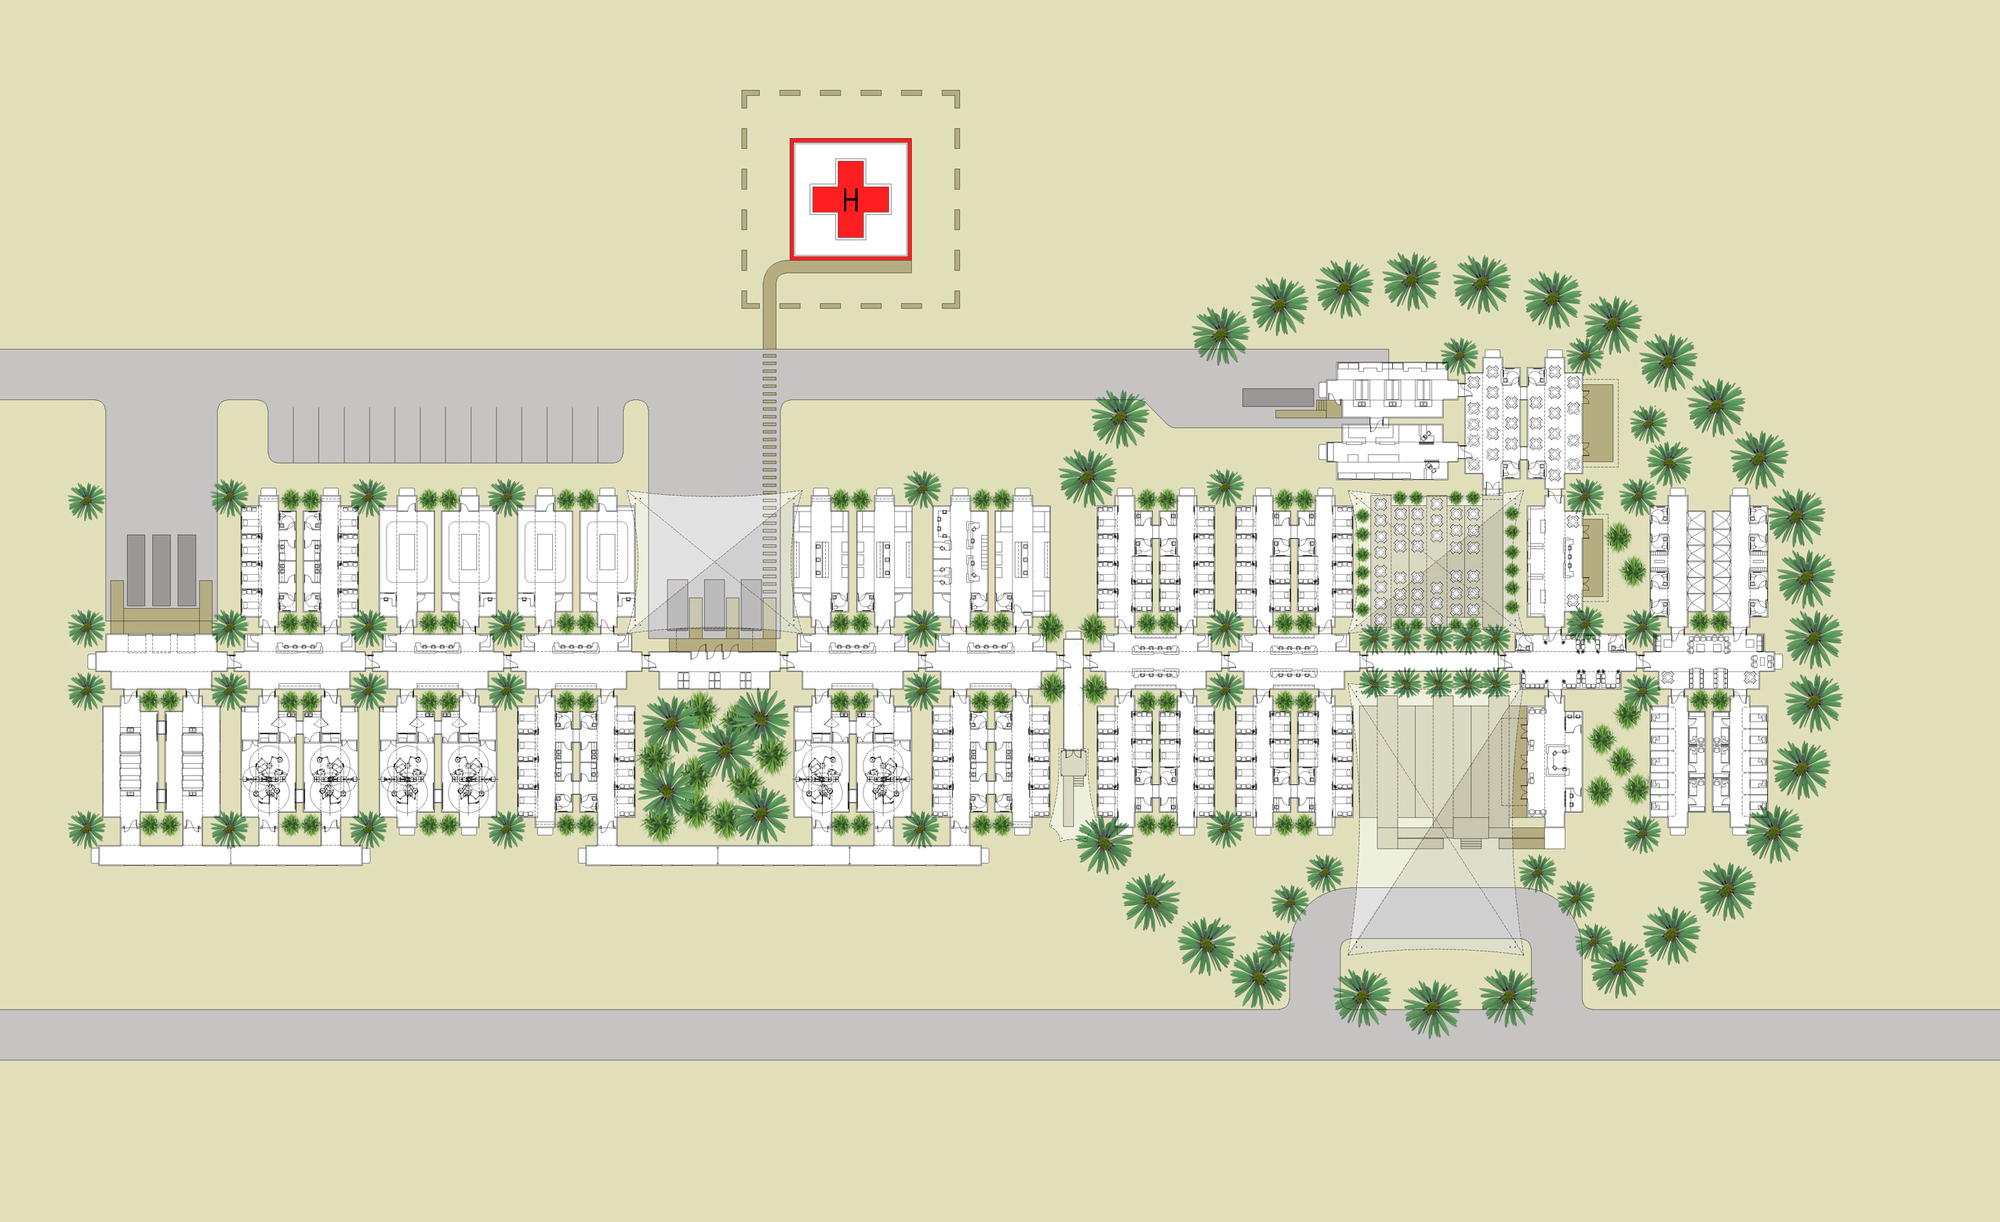 Floor plan in autocad file plan home plans ideas picture - Hospital Floor Plan Architecture Free Home Design Ideas